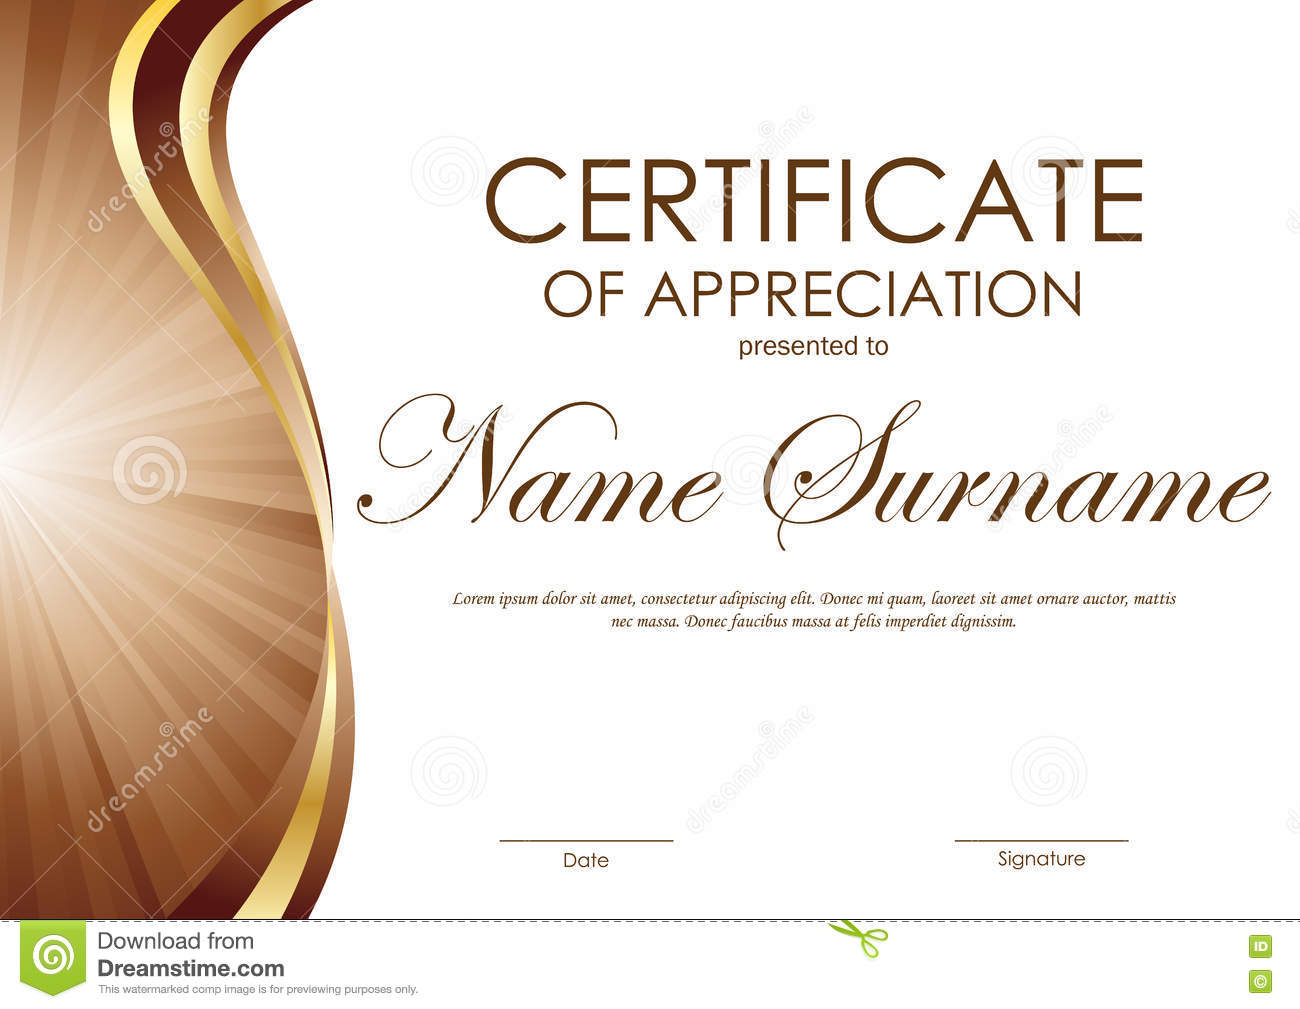 Certificate Of Appreciation Ms Word Download This Certificate Certificate  Appreciation Template Brown Gold Wavy Curved Swirl  Certificate Of Appreciation Word Template